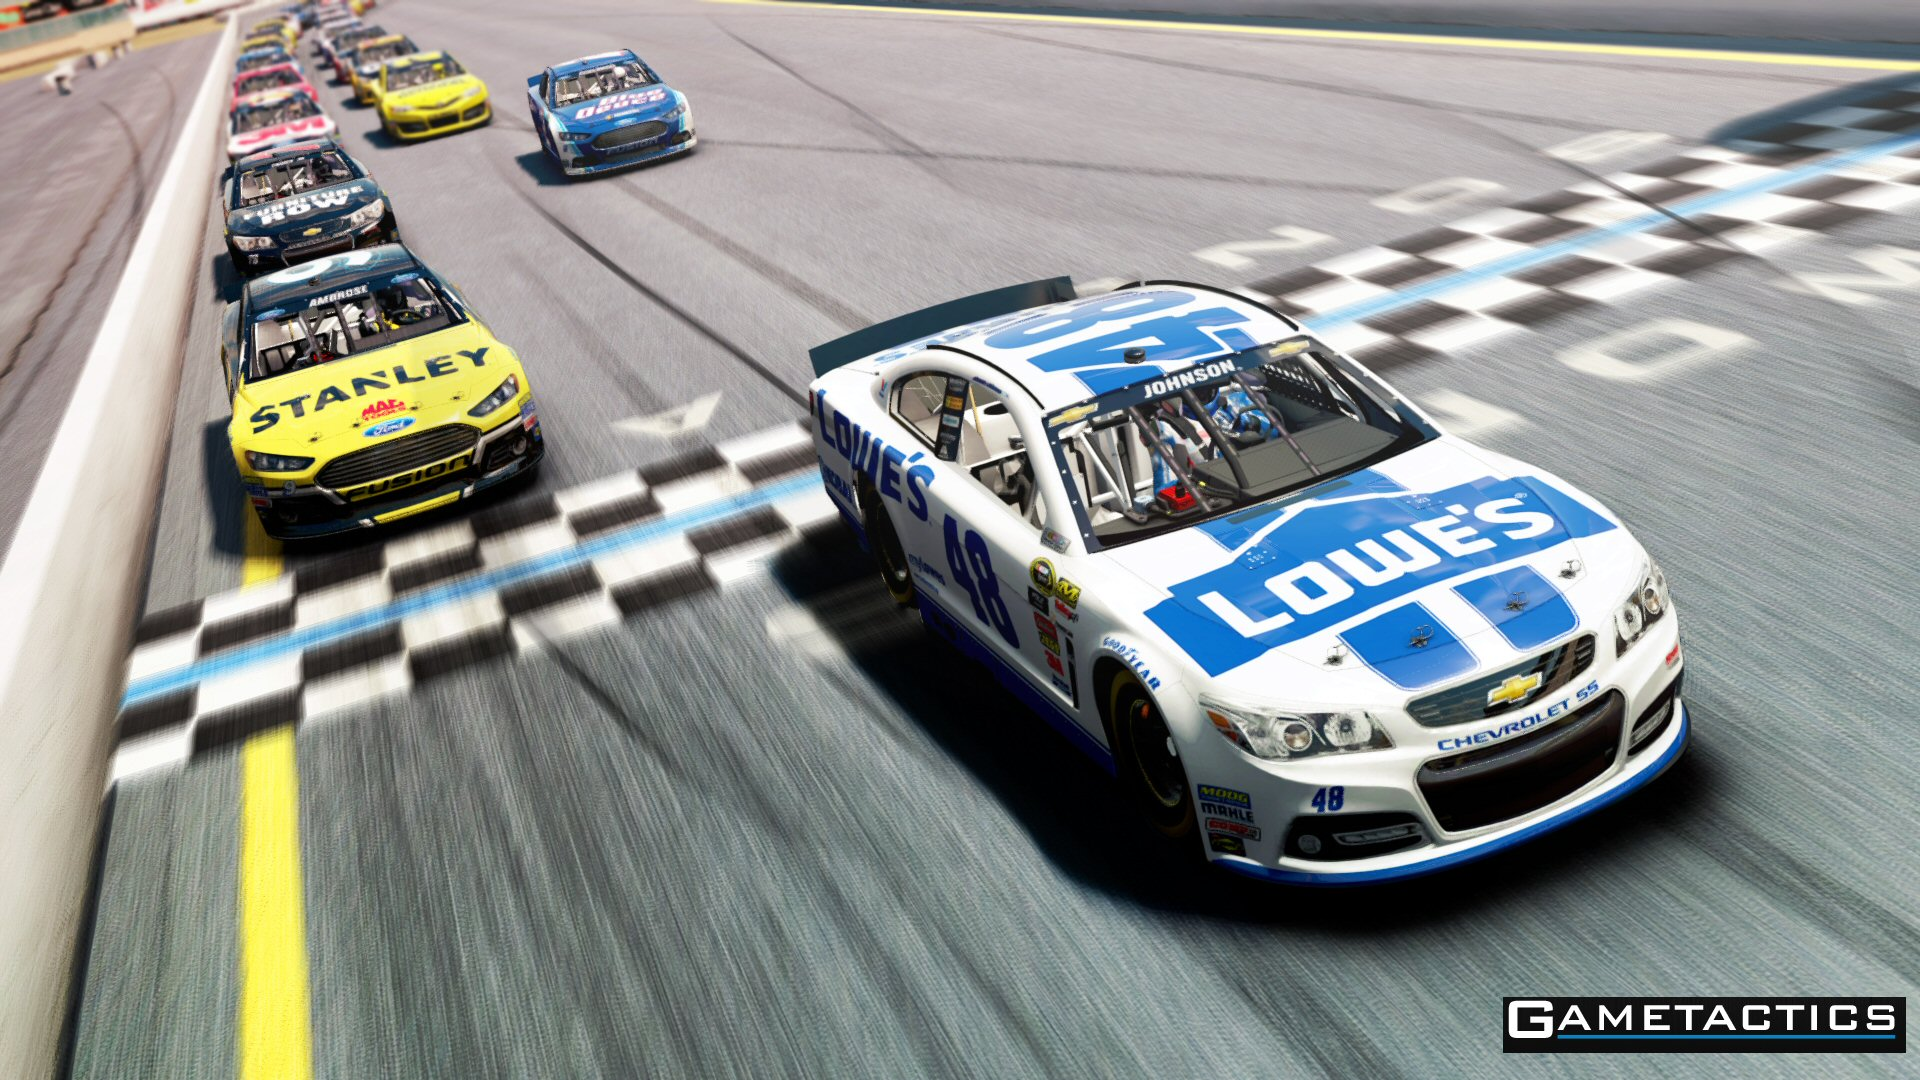 Nascar 14 is coming to pc playstation 3 and xbox 360 on february 18